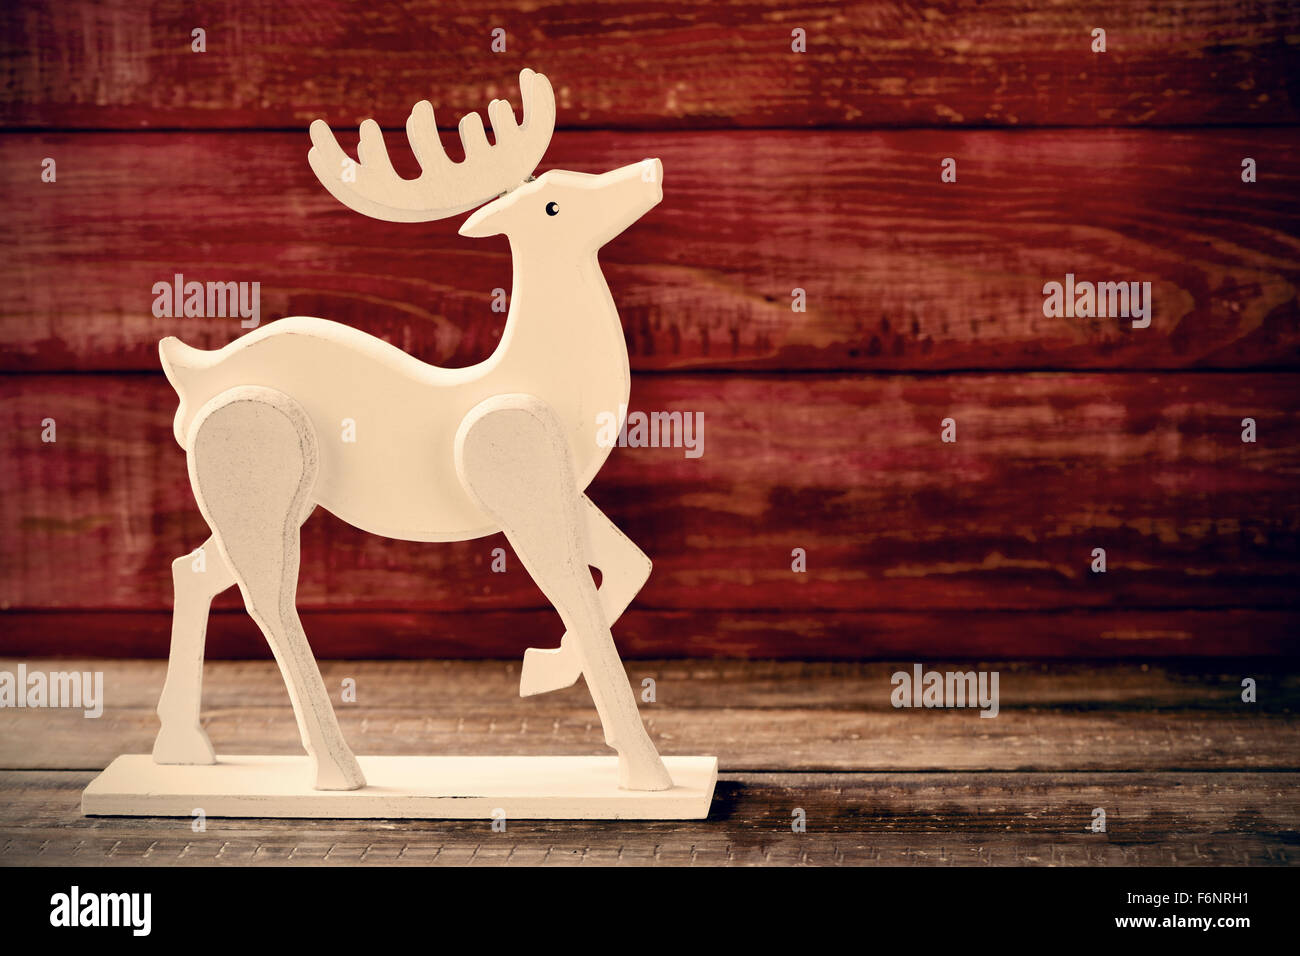 A Wooden Reindeer Shaped Ornament On A Rustic Wooden Surface Stock Photo Alamy